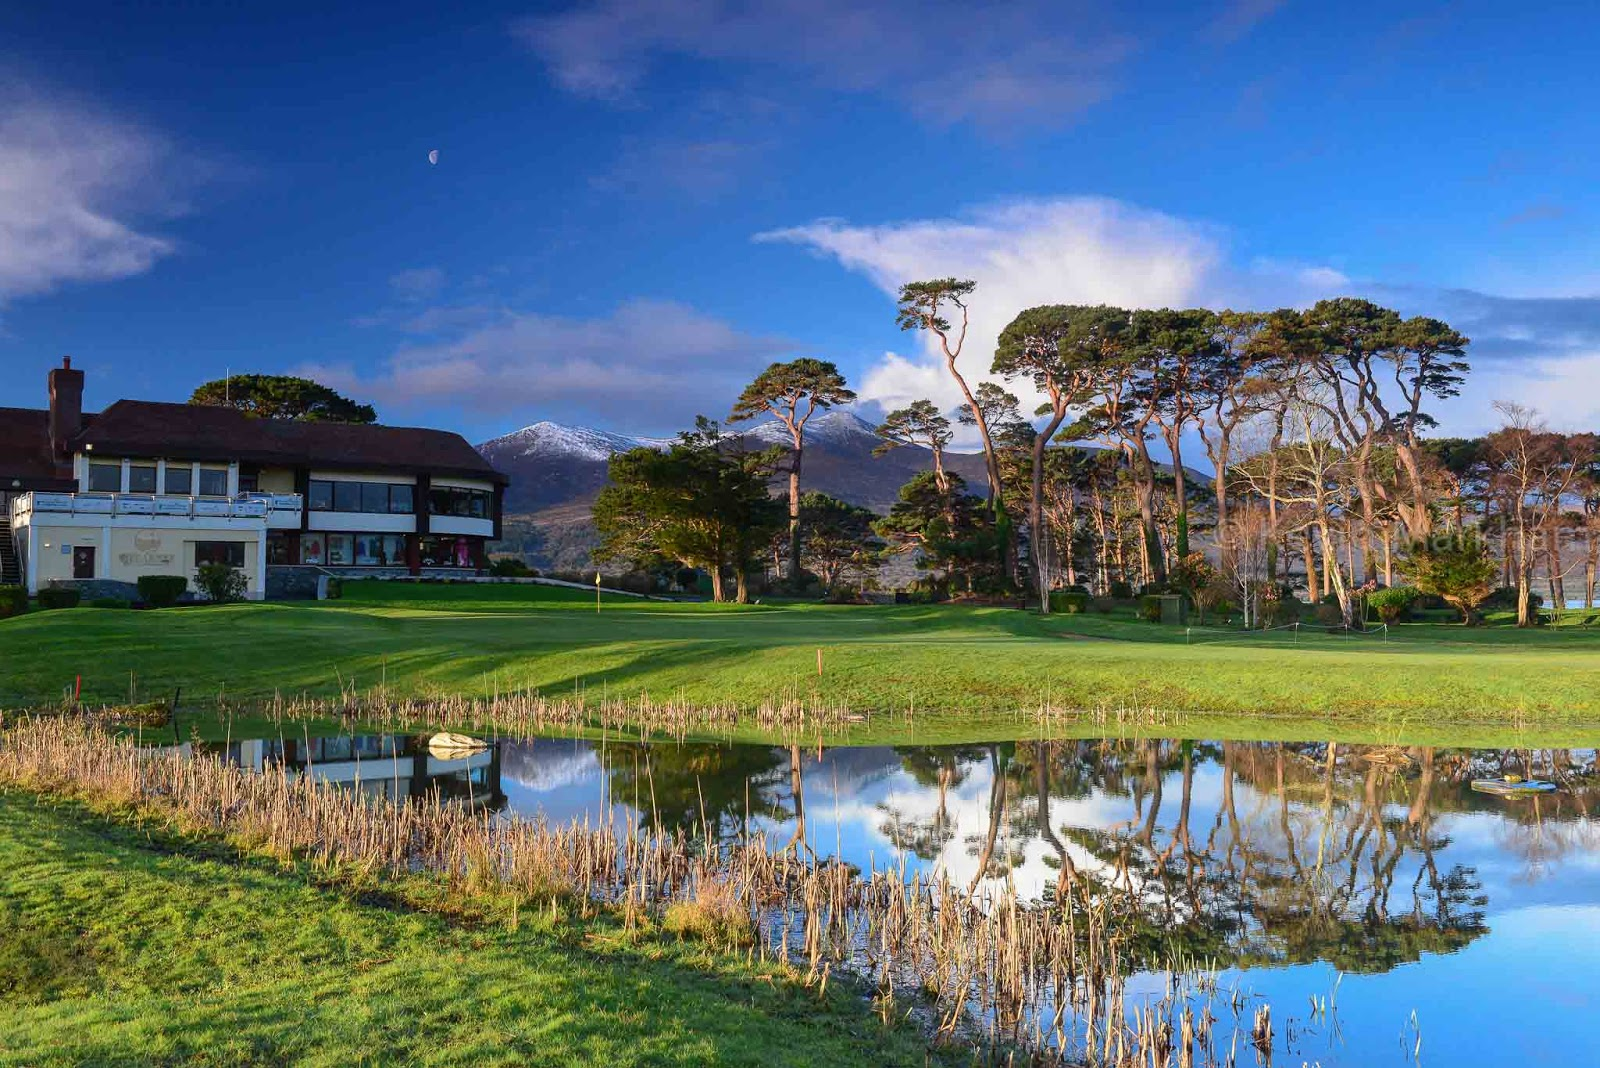 Hooked: Ireland's Golf Courses: Killarney Golf Club Finds a